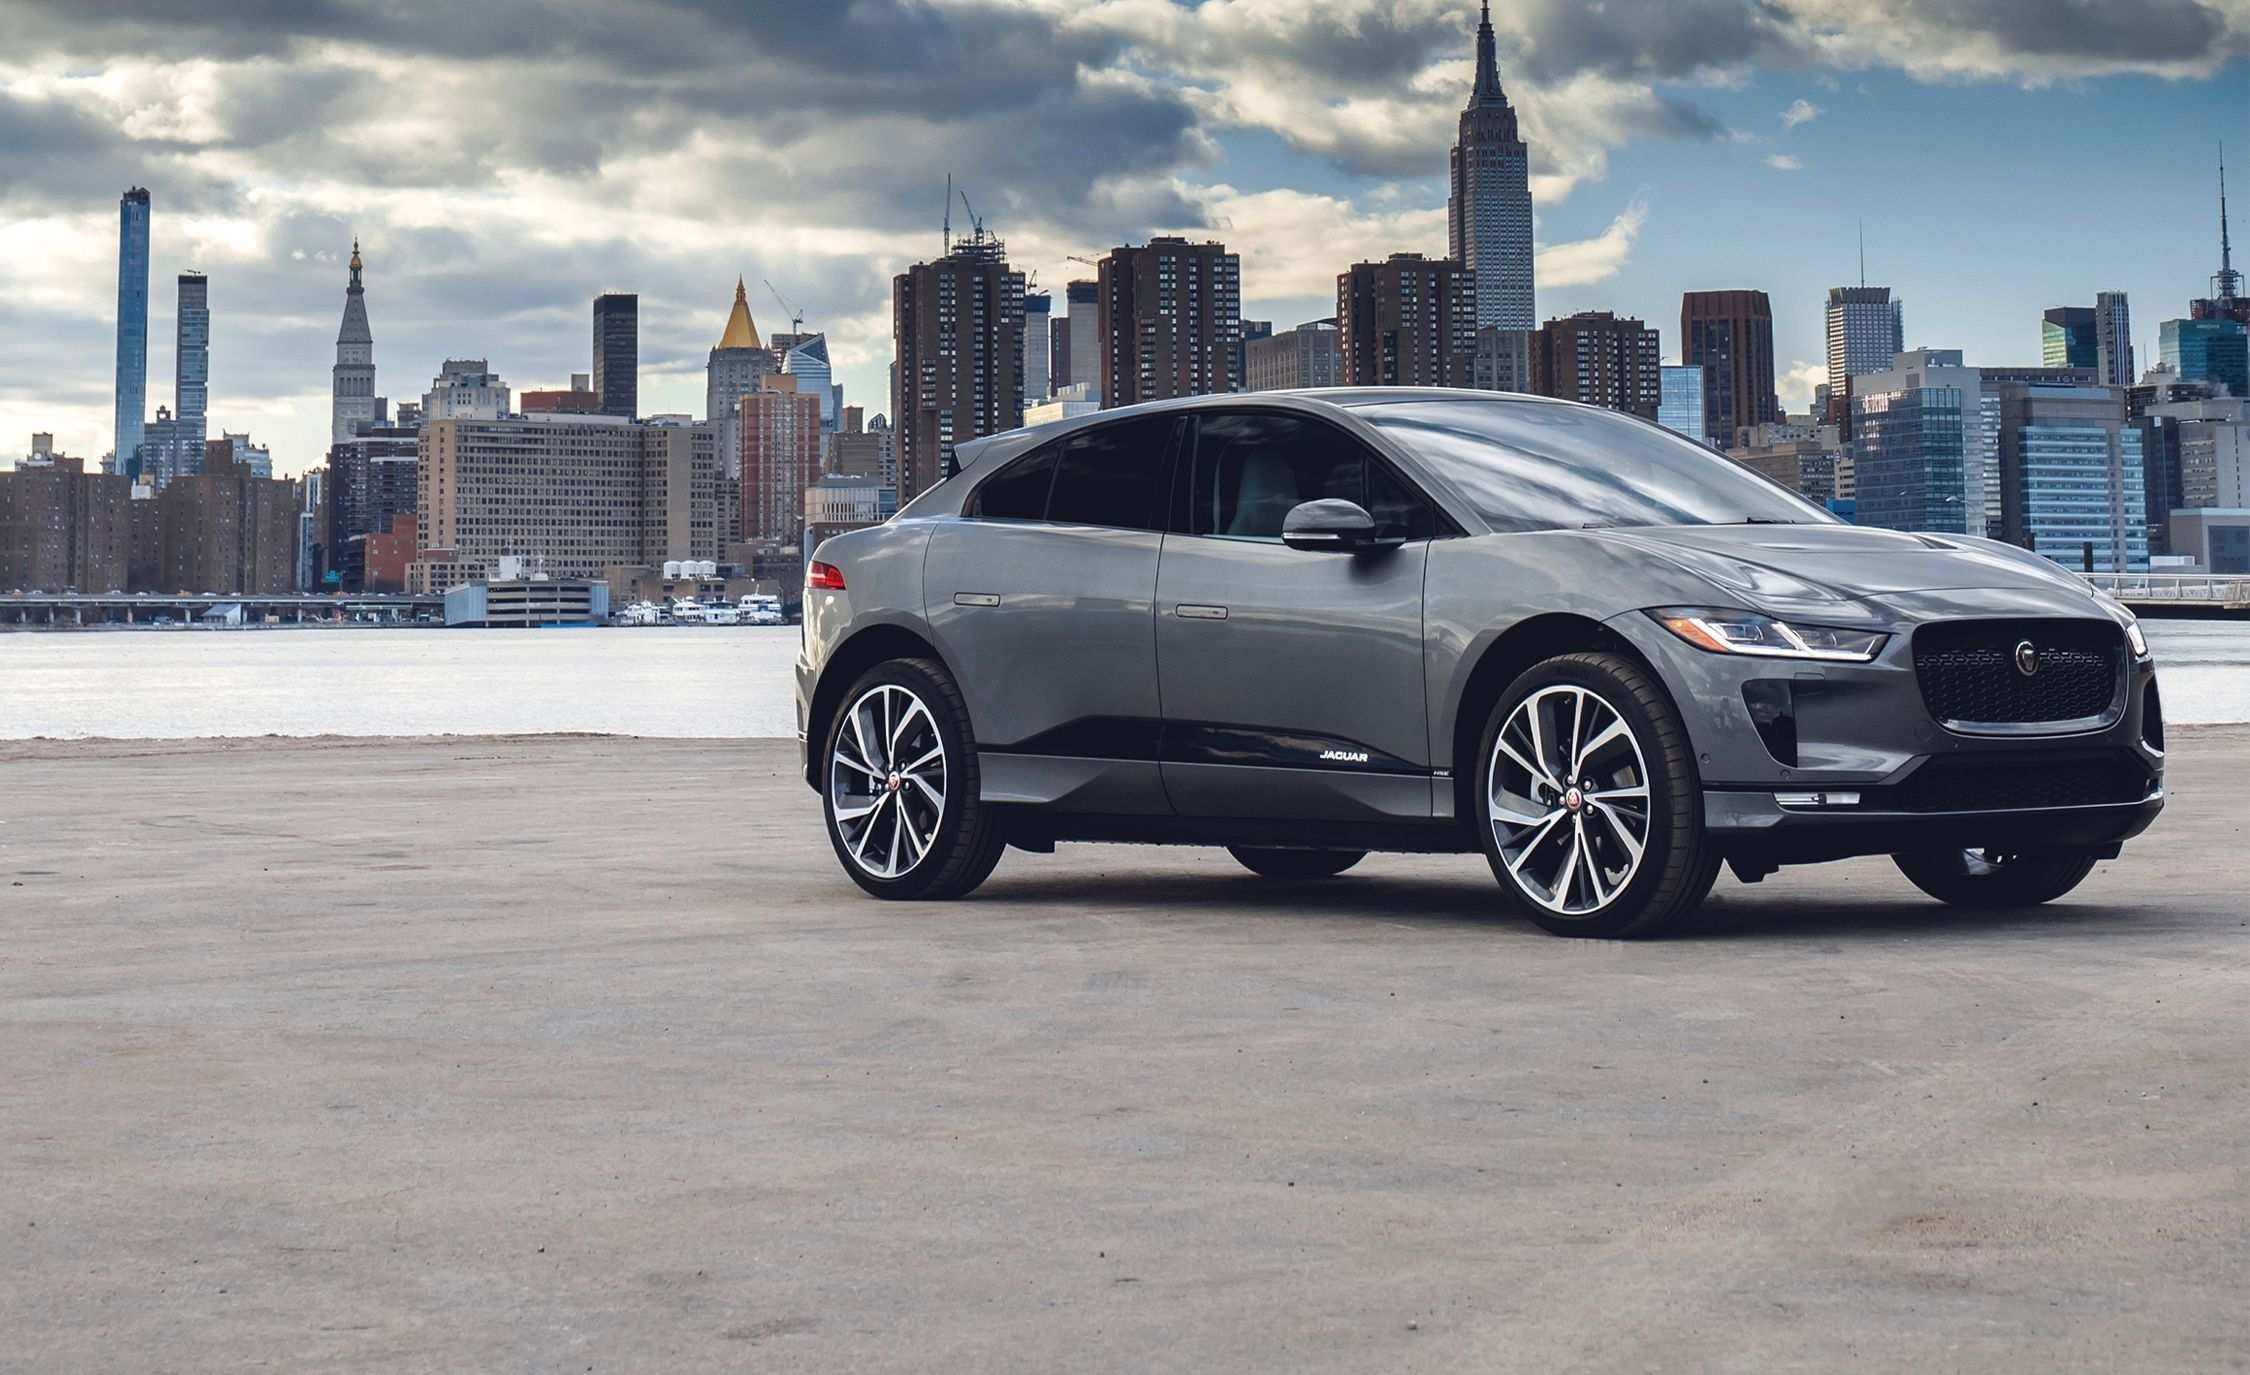 63 Gallery of 2019 Jaguar I Pace Exterior and Interior with 2019 Jaguar I Pace